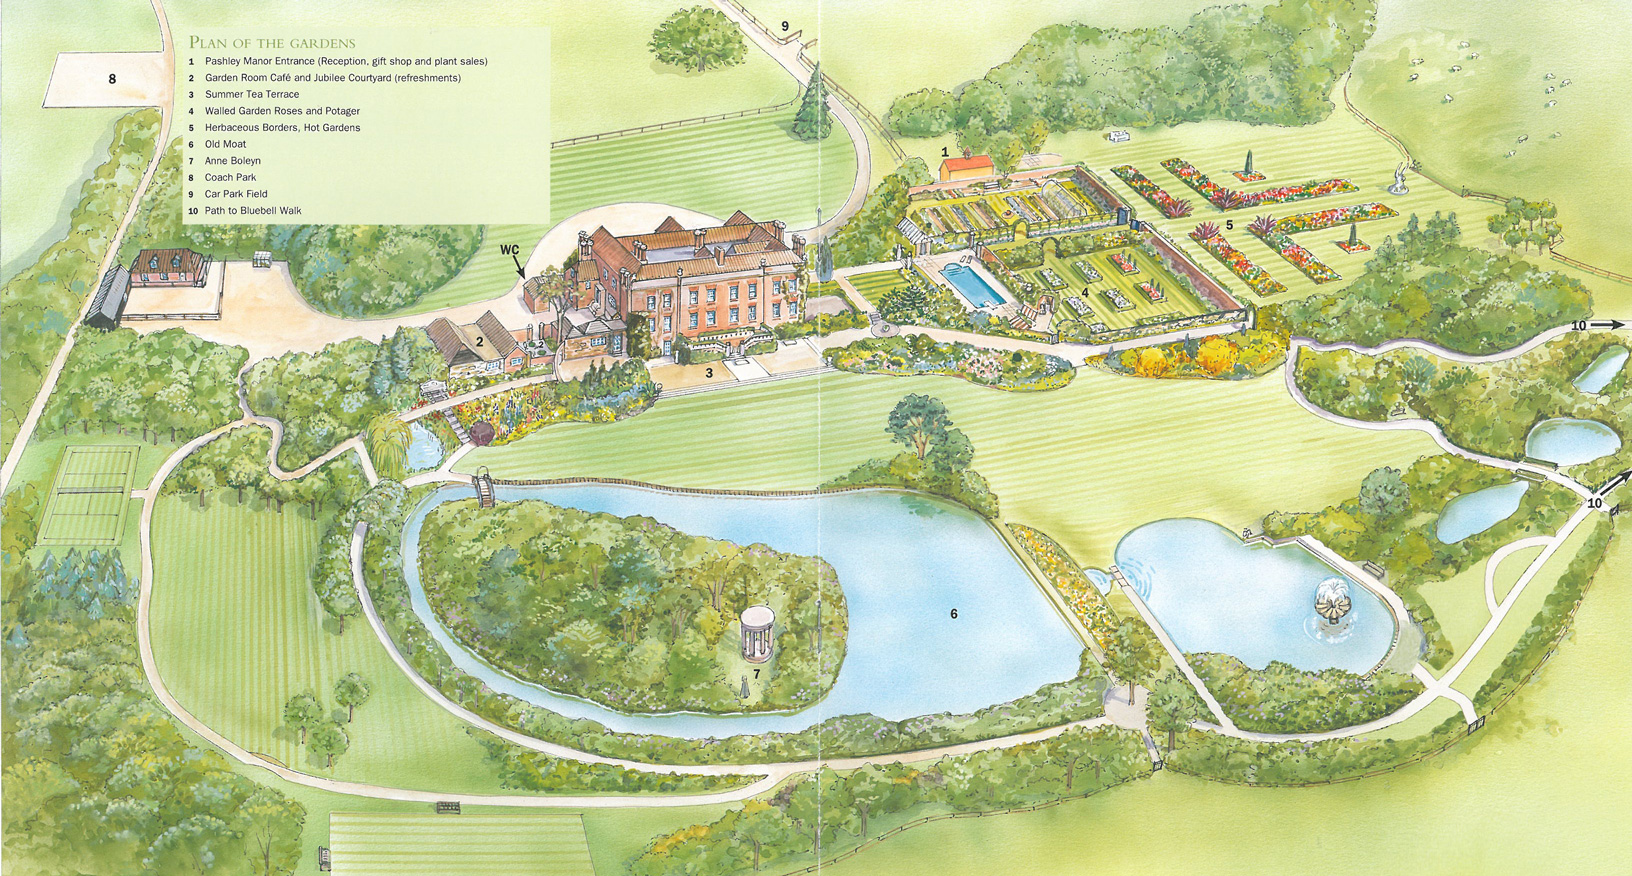 Plan of the Gardens at Pashley Manor. Image courtesy of Pashley Manor.